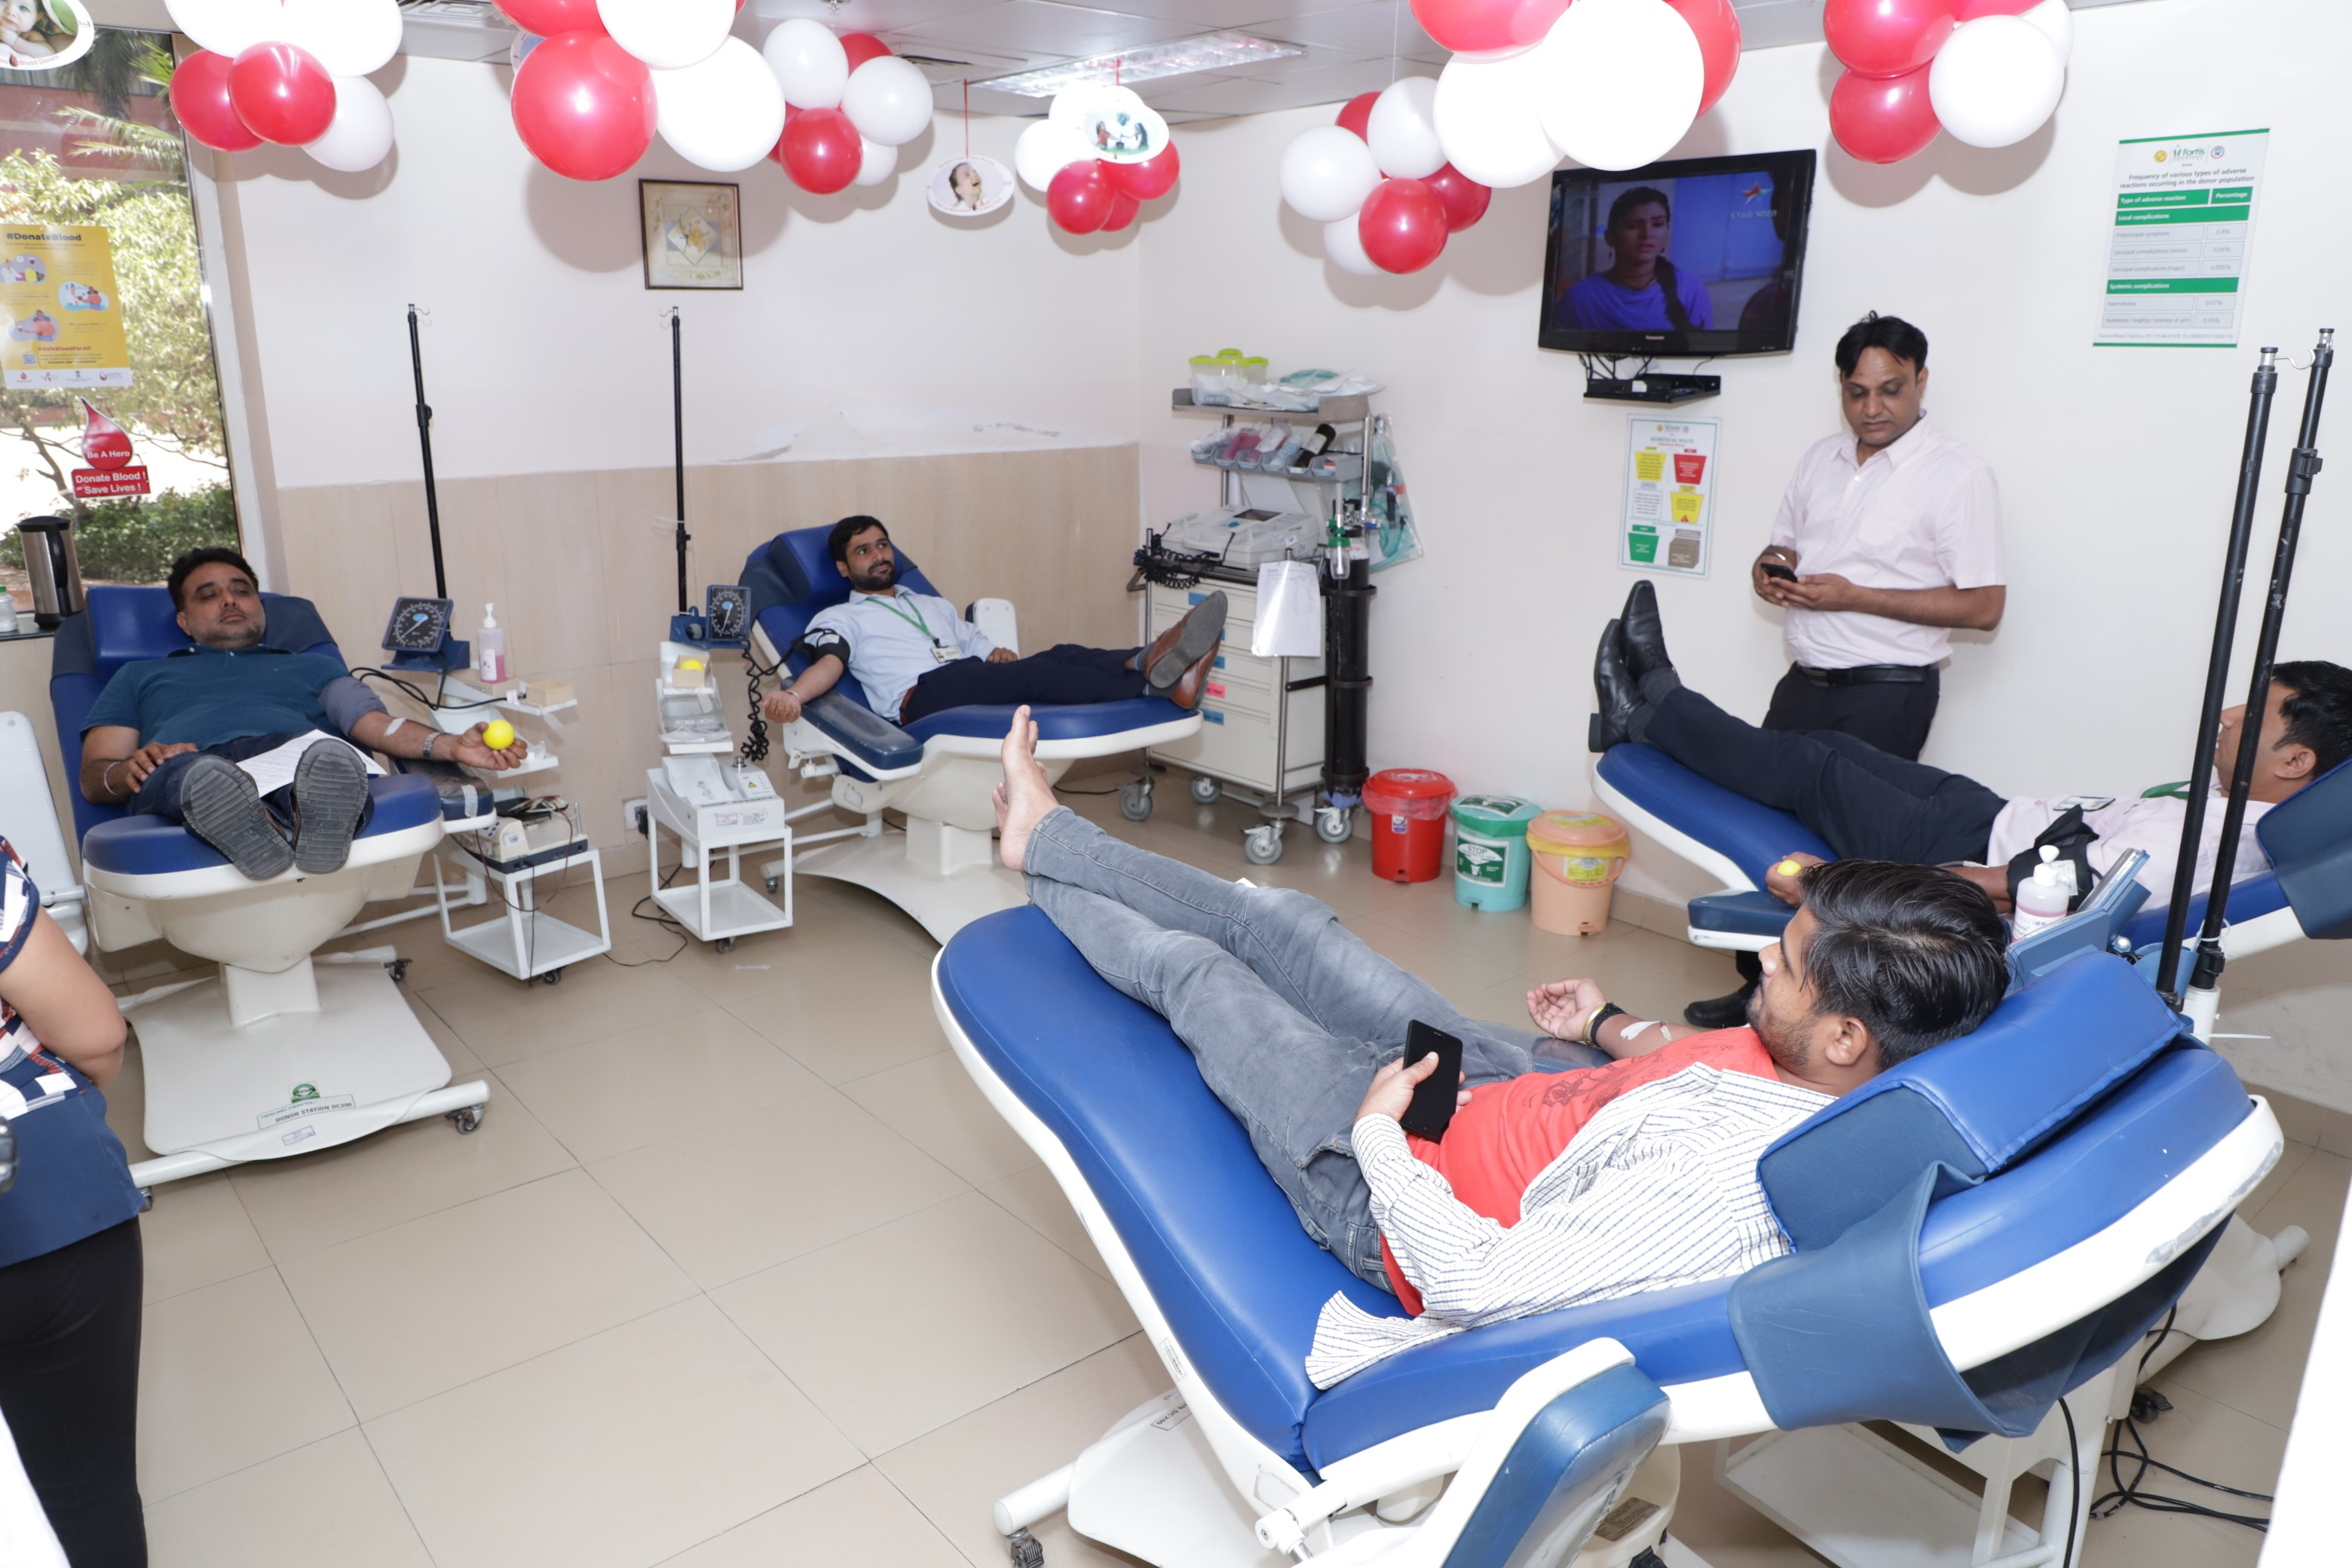 Doctors at Fortis Hospital, Mohali highlight the Health Benefits of Voluntary Blood Donation